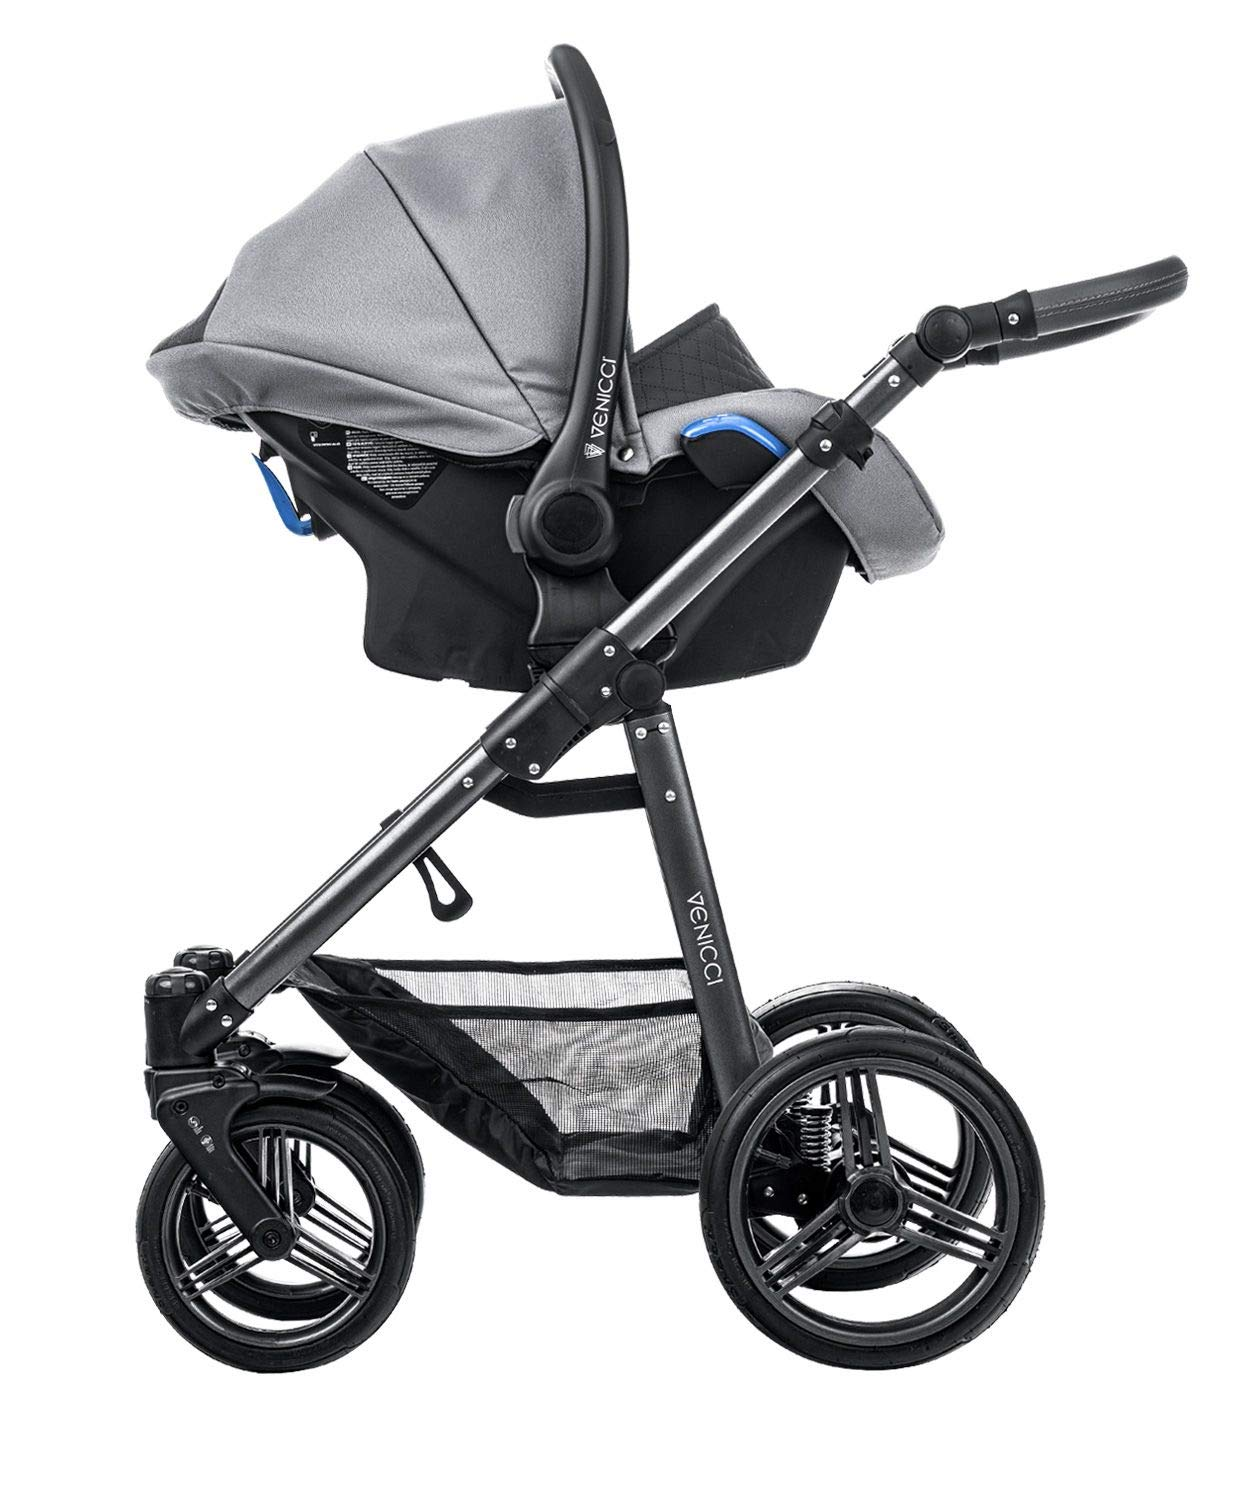 Venicci Carbo Lux 3-in-1 Travel System - Natural Grey - with Carrycot + Car Seat + Changing Bag + Apron + Raincover + Mosquito Net + 5-Point Harness and UV 50+ Fabric + Car Seat Adapters + Cup Holder Venicci 3 in 1 Travel System with included Group 0+ Car Seat 5-point harness to enhance the safety of your child Comfortable seat for baby with additional liners 4